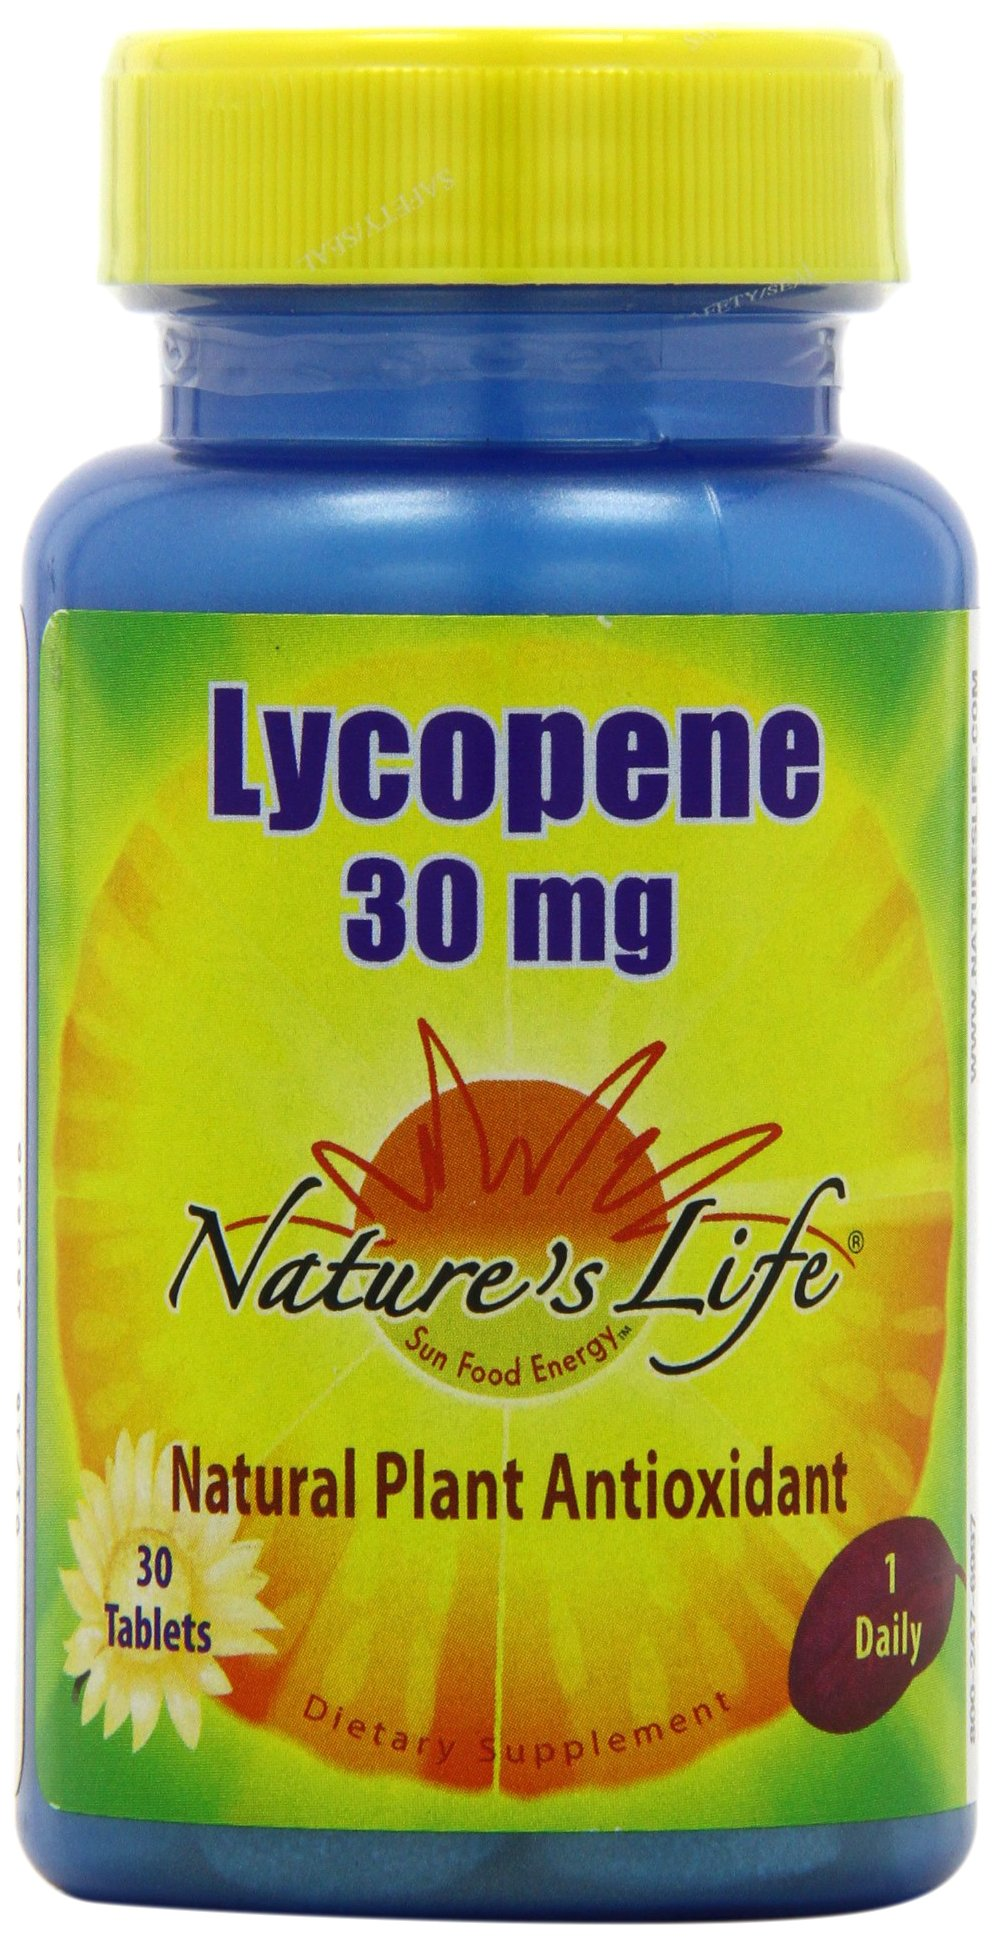 Nature's Life Lycopene Tablets, 30 Mg, 30 Count by Nature's Life